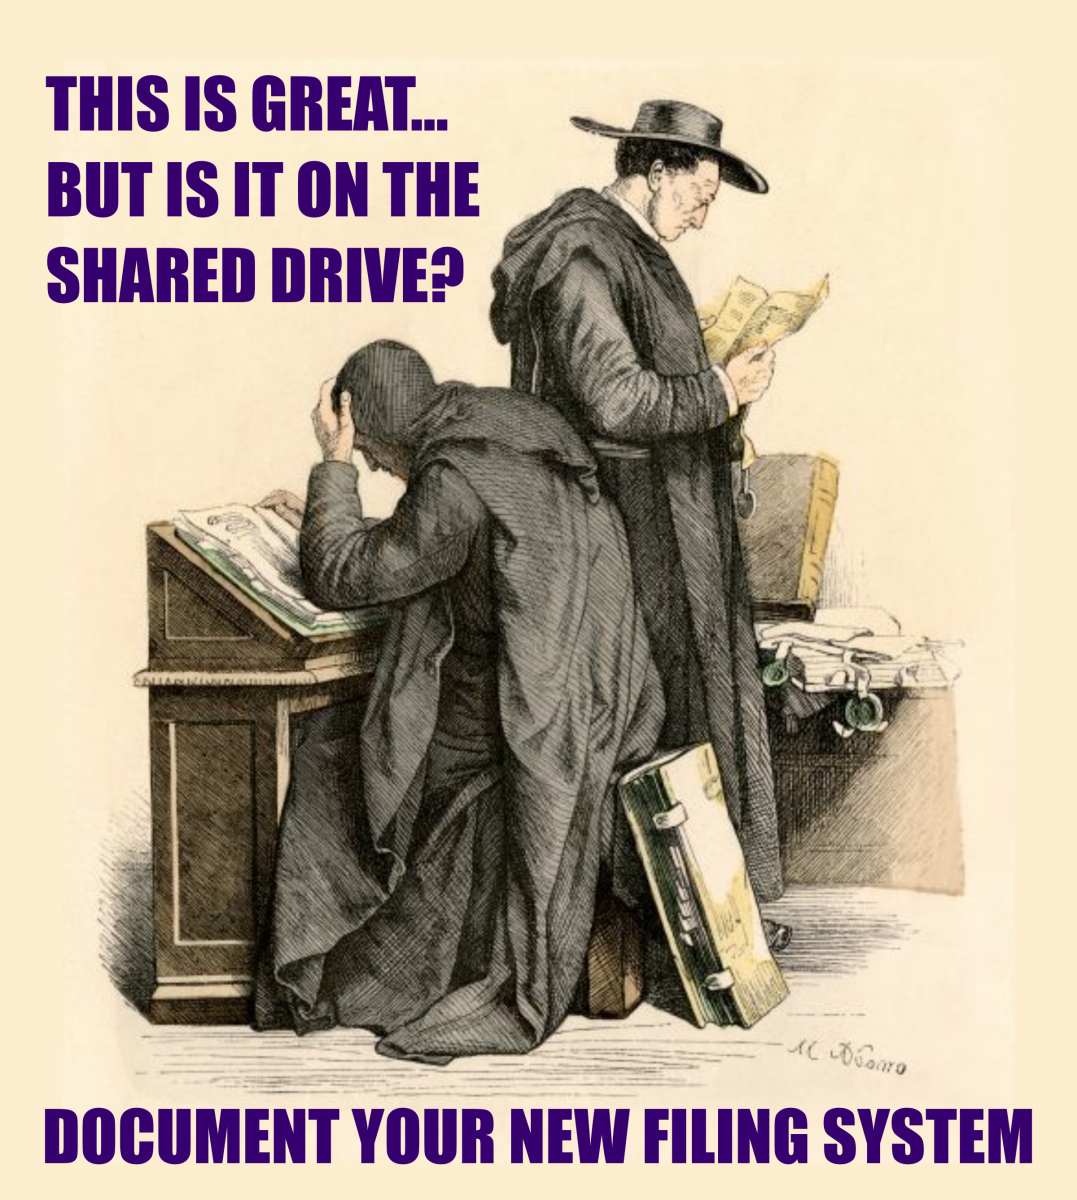 This is great, but is it on the shared drive? Document your new filing system